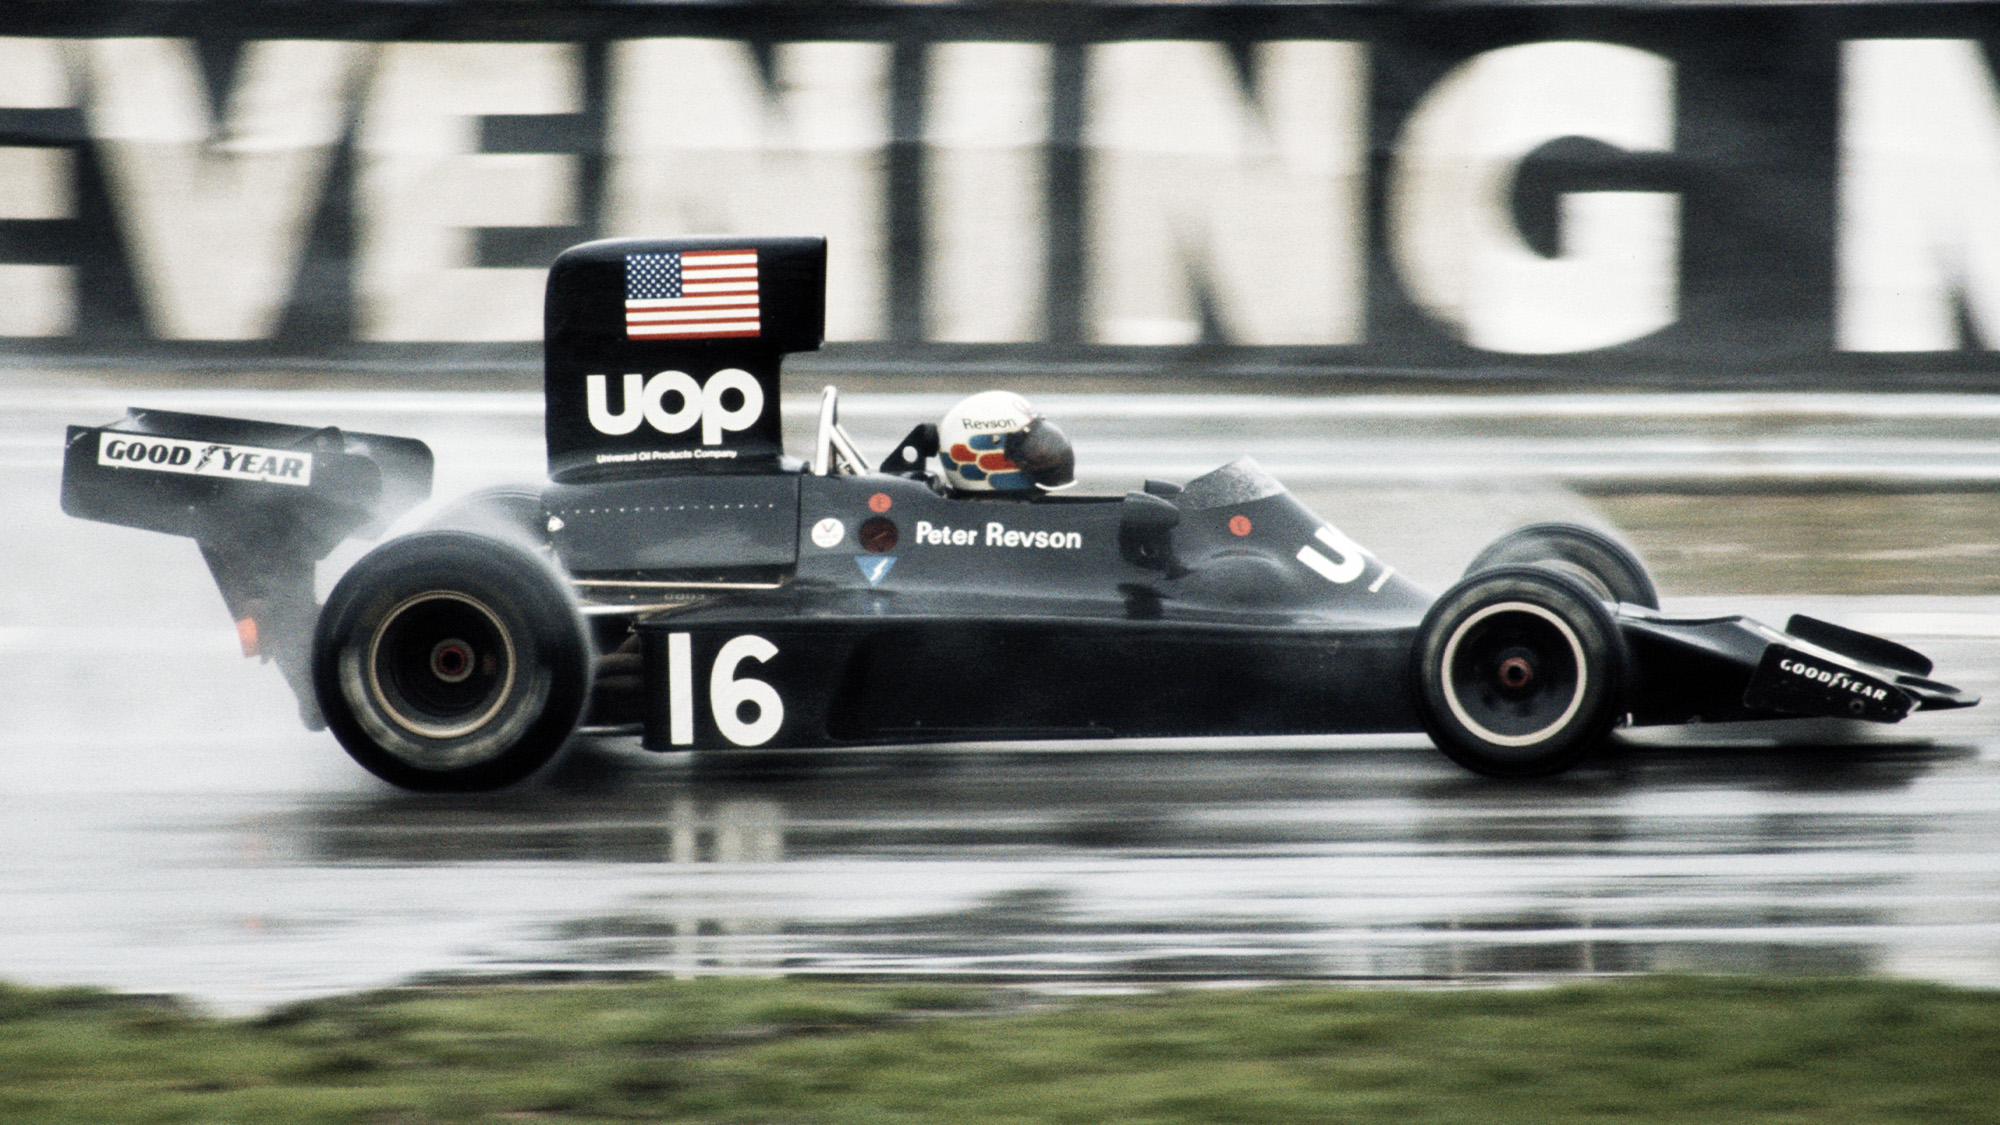 Peter Revson in his Shadow-Ford DN3 during the 1974 Race of Champions at Brands Hatch